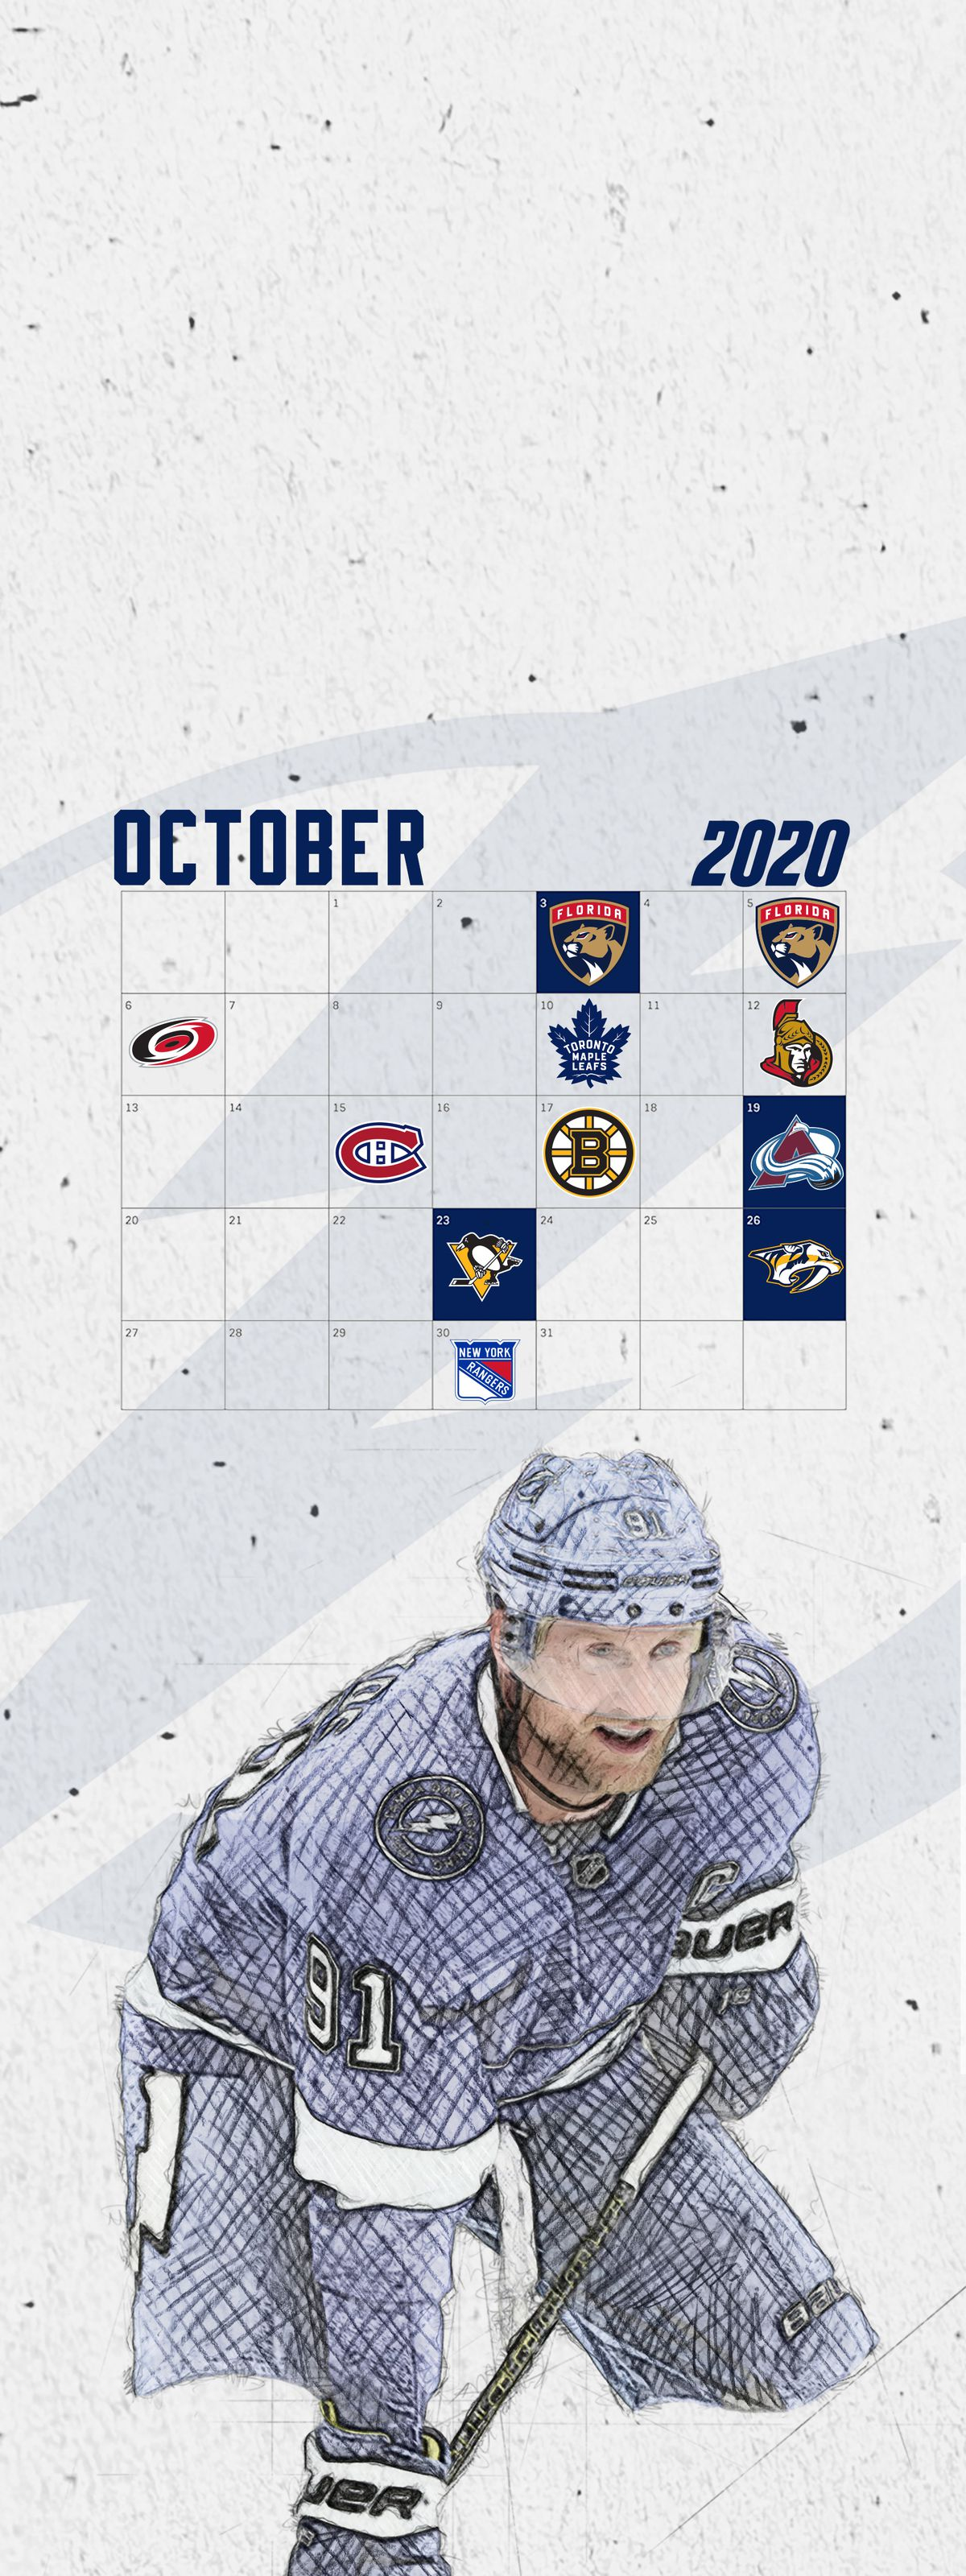 Tampa Bay Lightning October 2019 Wallpaper Schedule Raw Charge